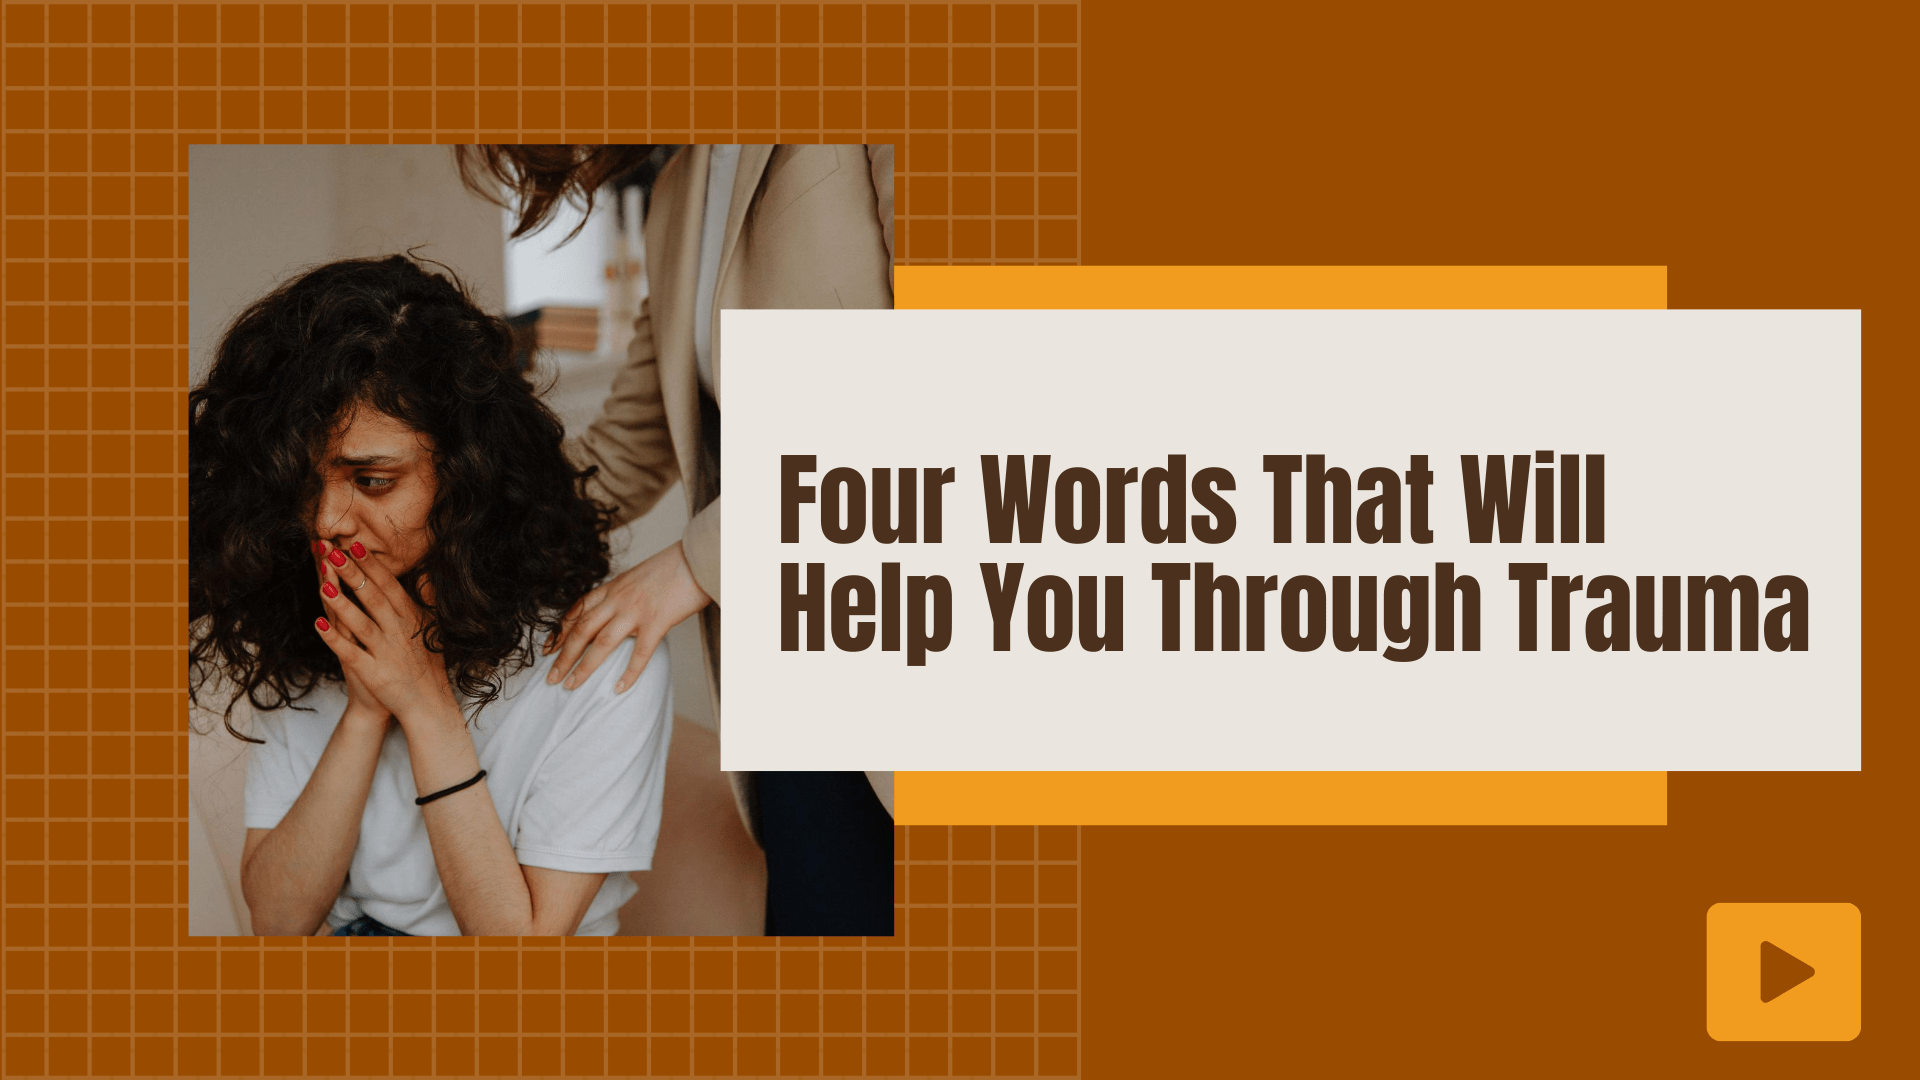 Four Words That Will Help You Through Trauma